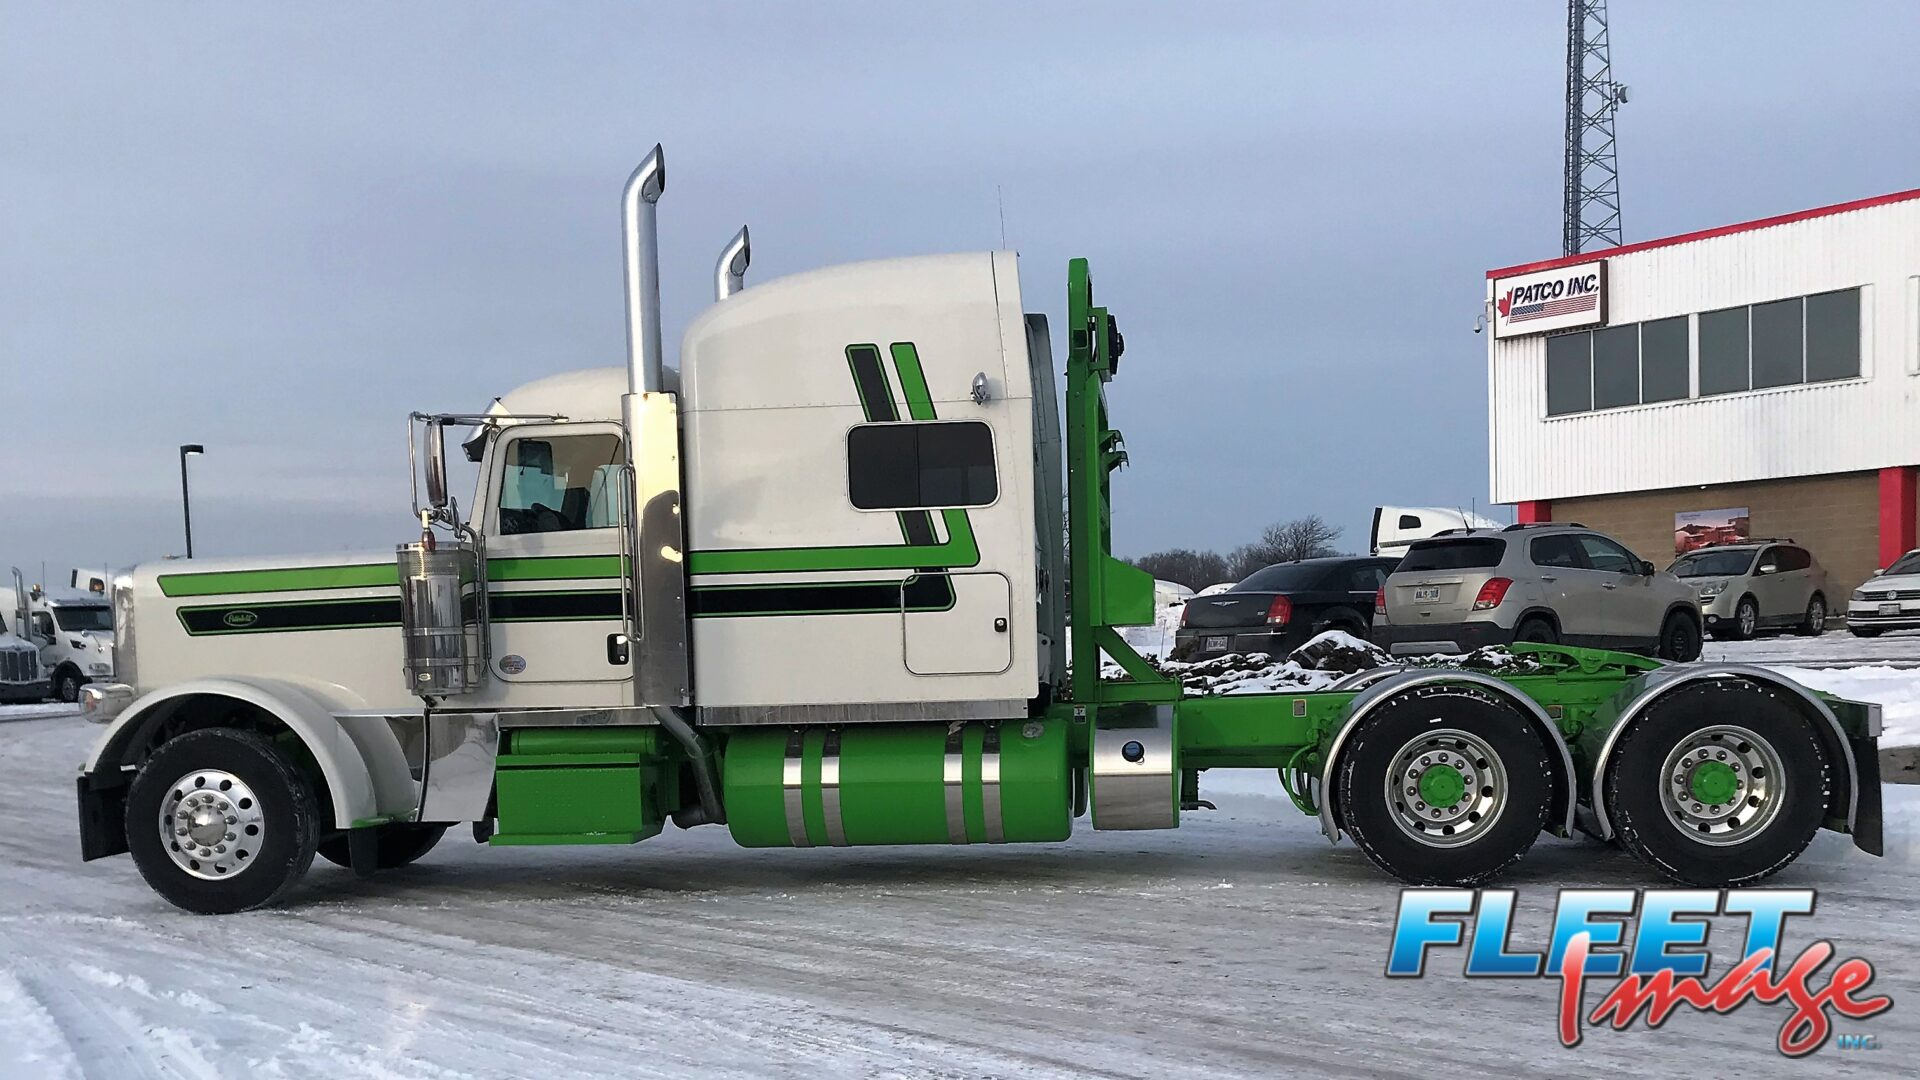 Green and white truck